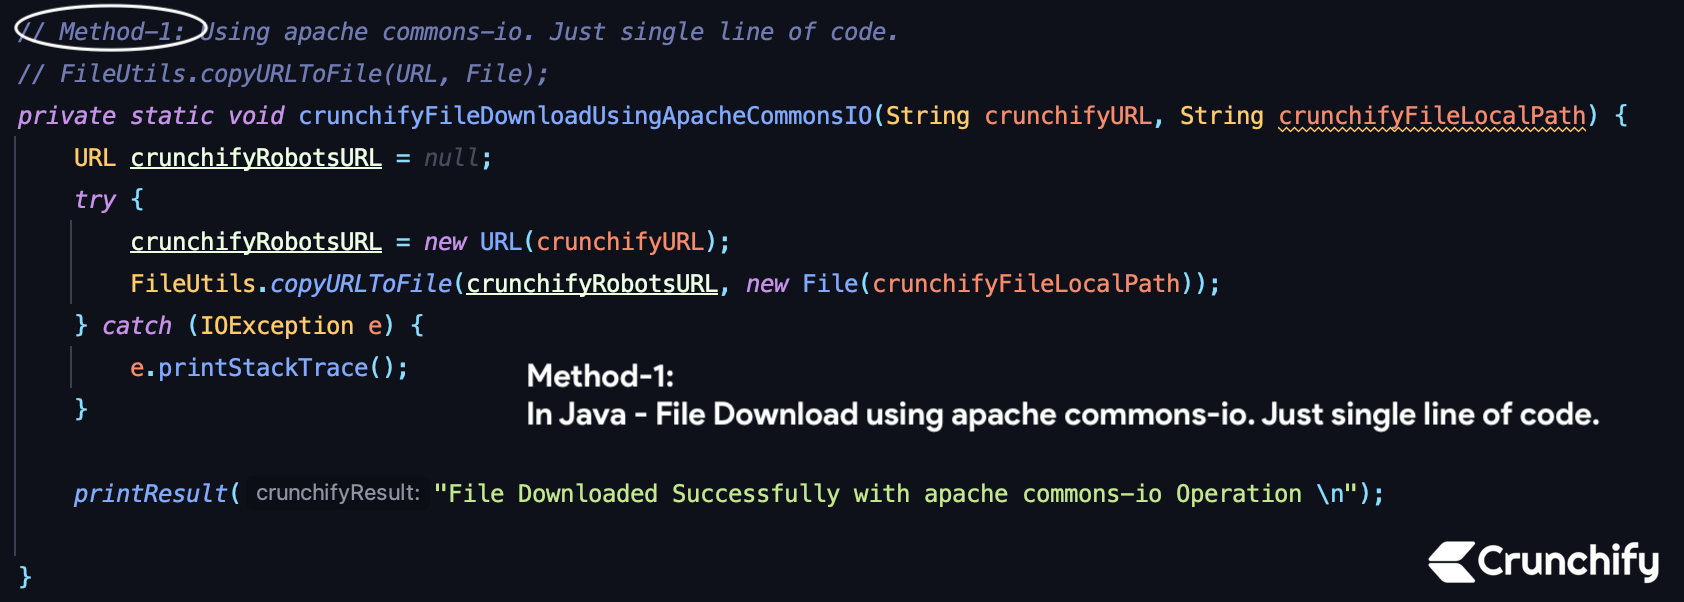 In Java - File Download using apache commons-io. Just single line of code.